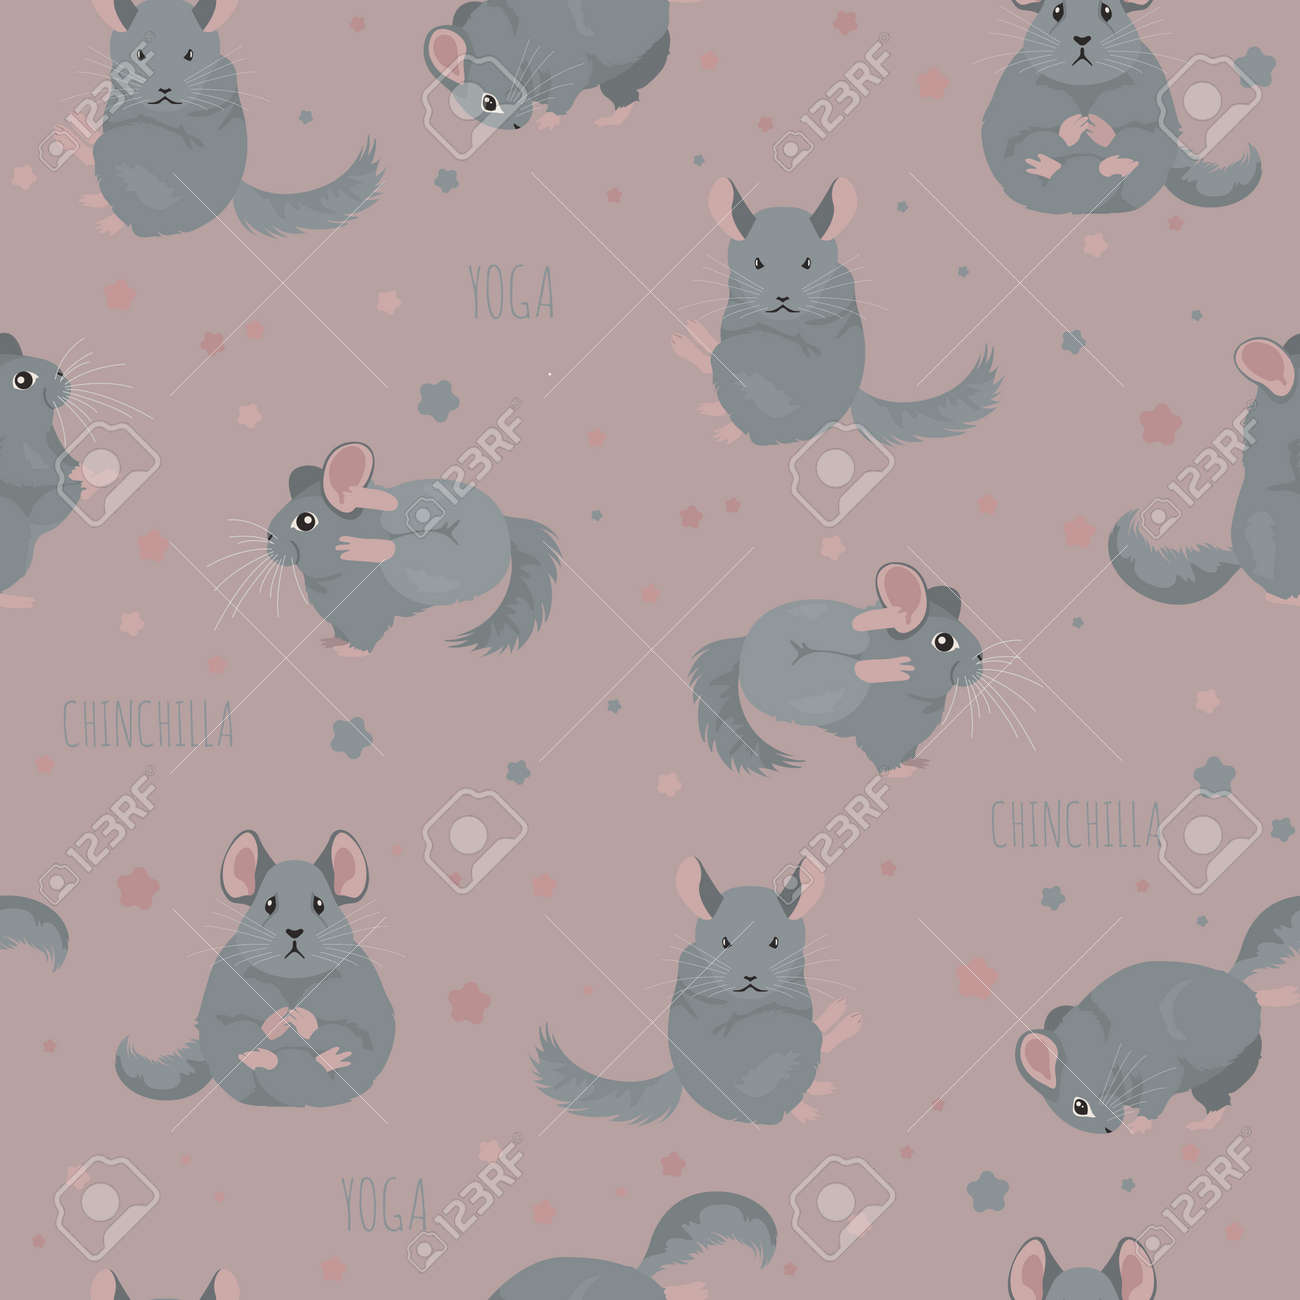 Chinchilla Yoga Poses And Exercises Cute Cartoon Seamless Pattern Royalty Free Cliparts Vectors And Stock Illustration Image 128503337